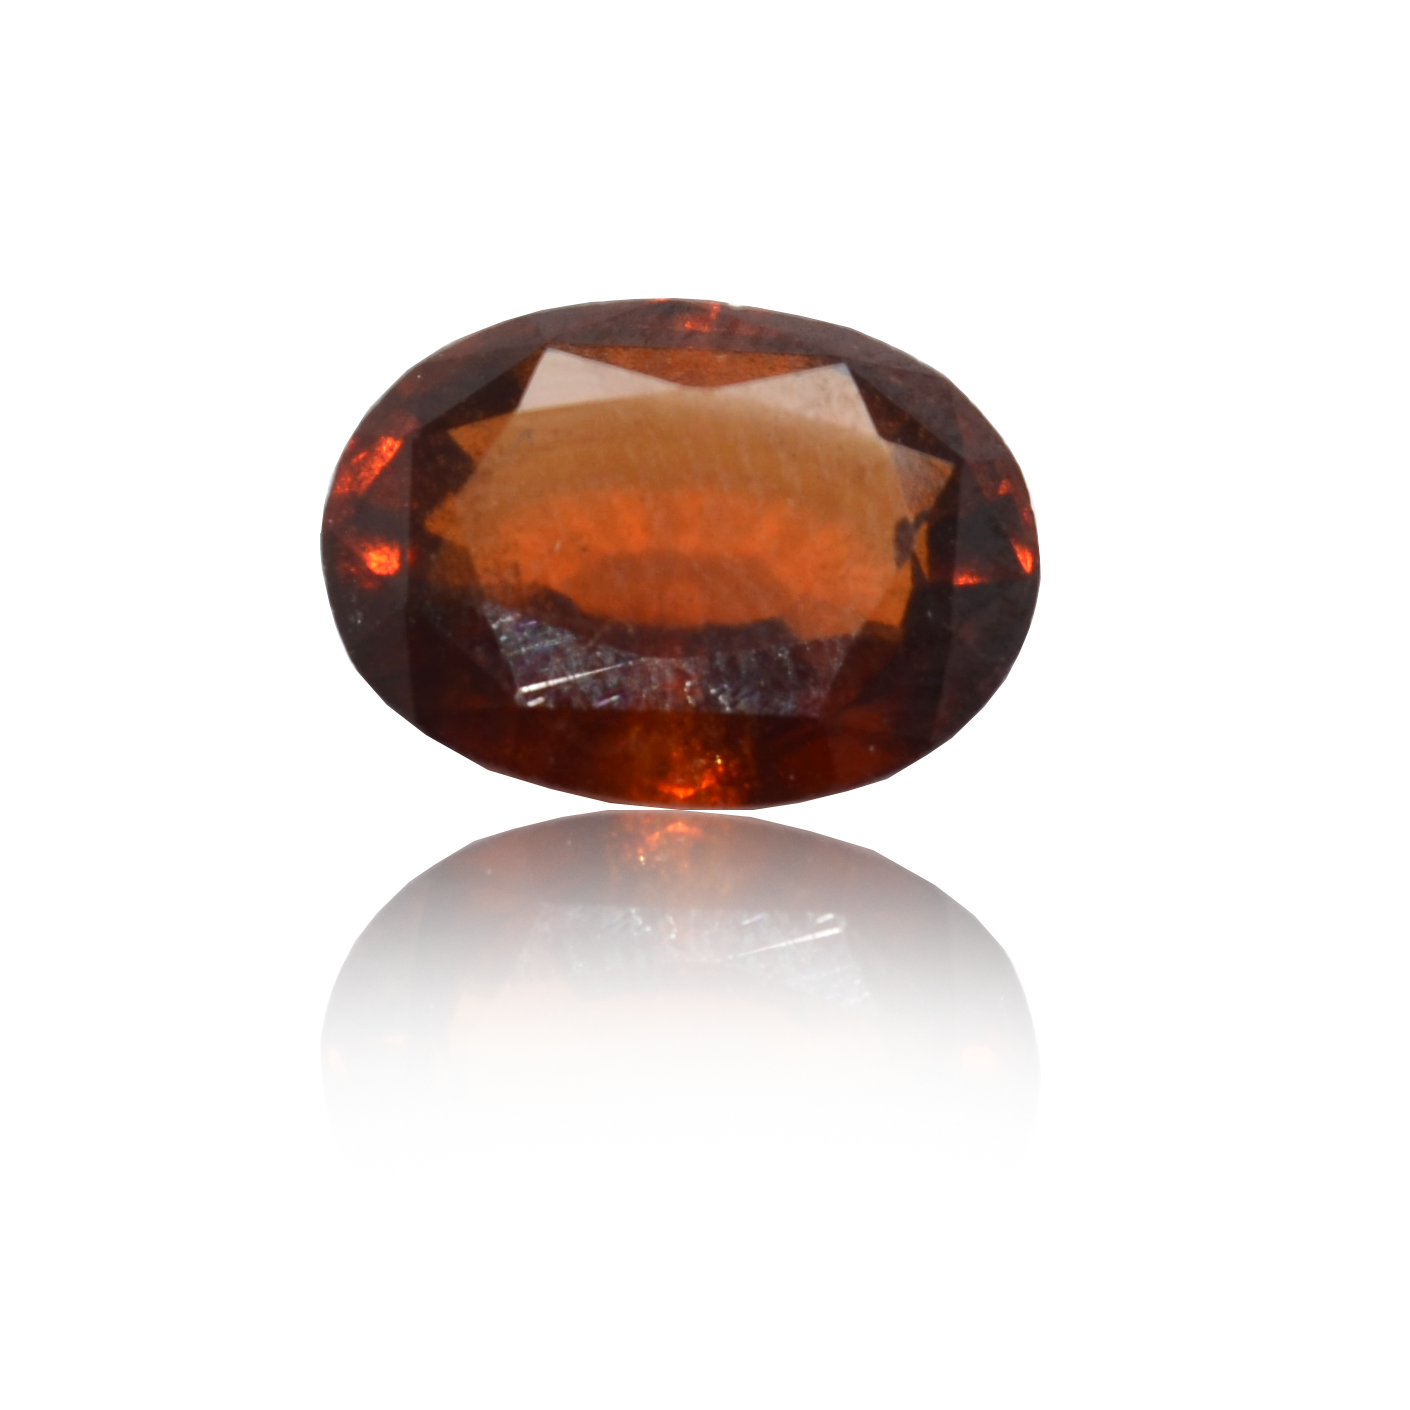 4.56 CARAT, OVAL MIXED CUT NATURAL HESSONITE GARNET